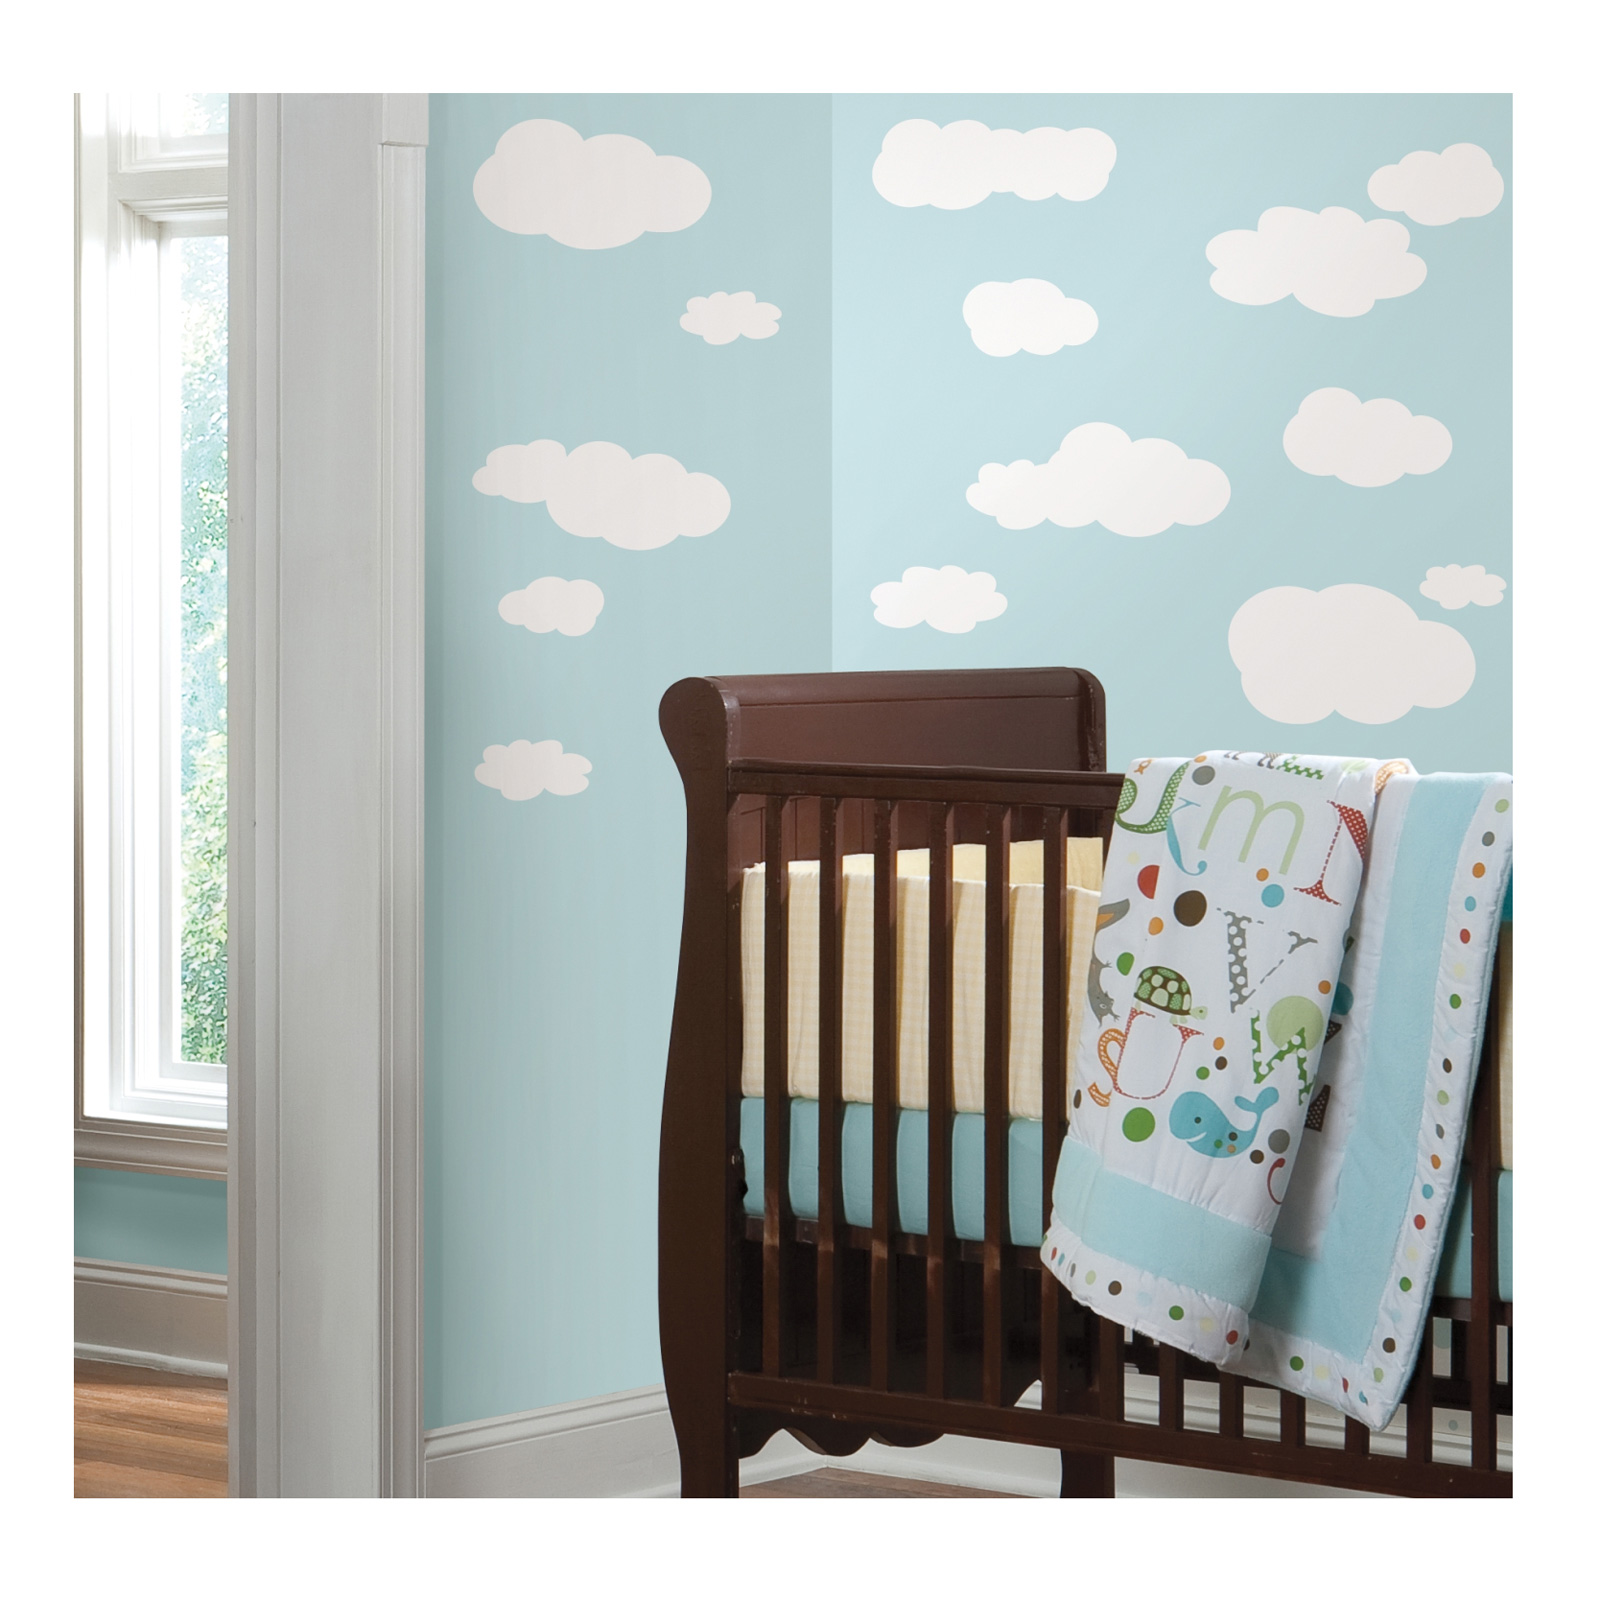 White Clouds Wall Decal by Stardom Specialty in USA